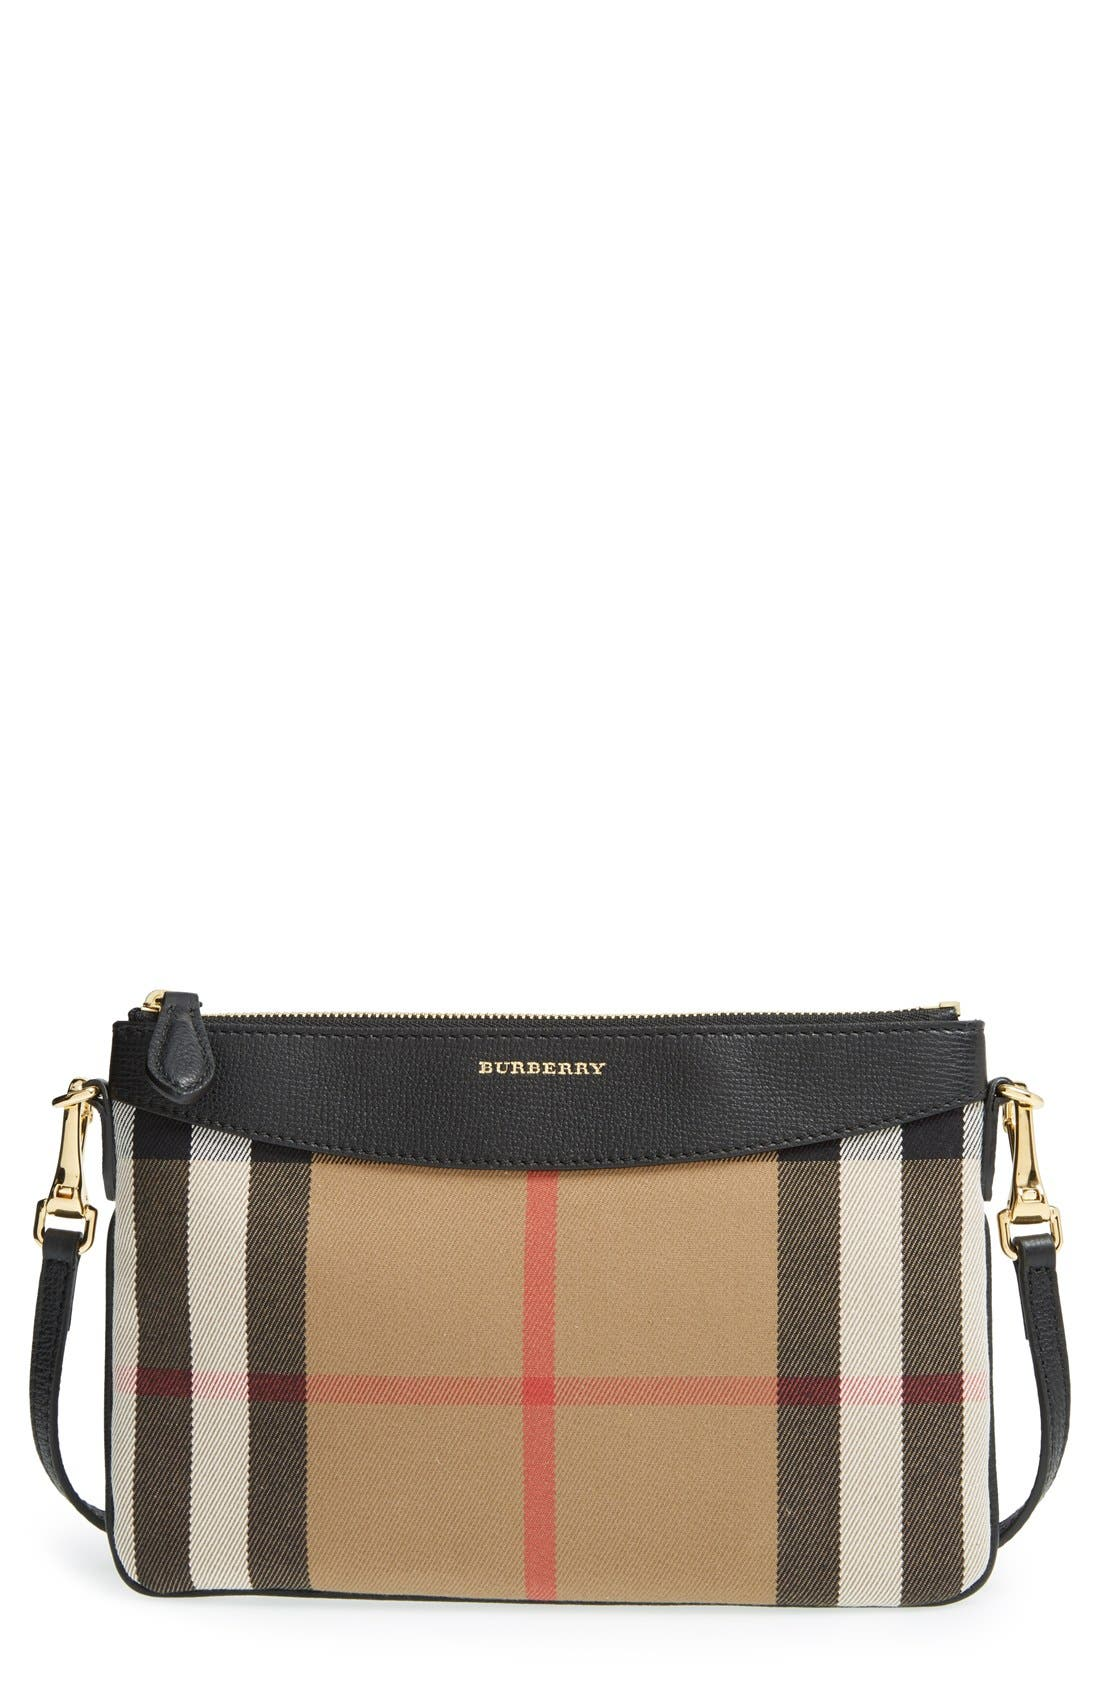 BURBERRY, 'Peyton - House Check' Crossbody Bag, Main thumbnail 1, color, 001